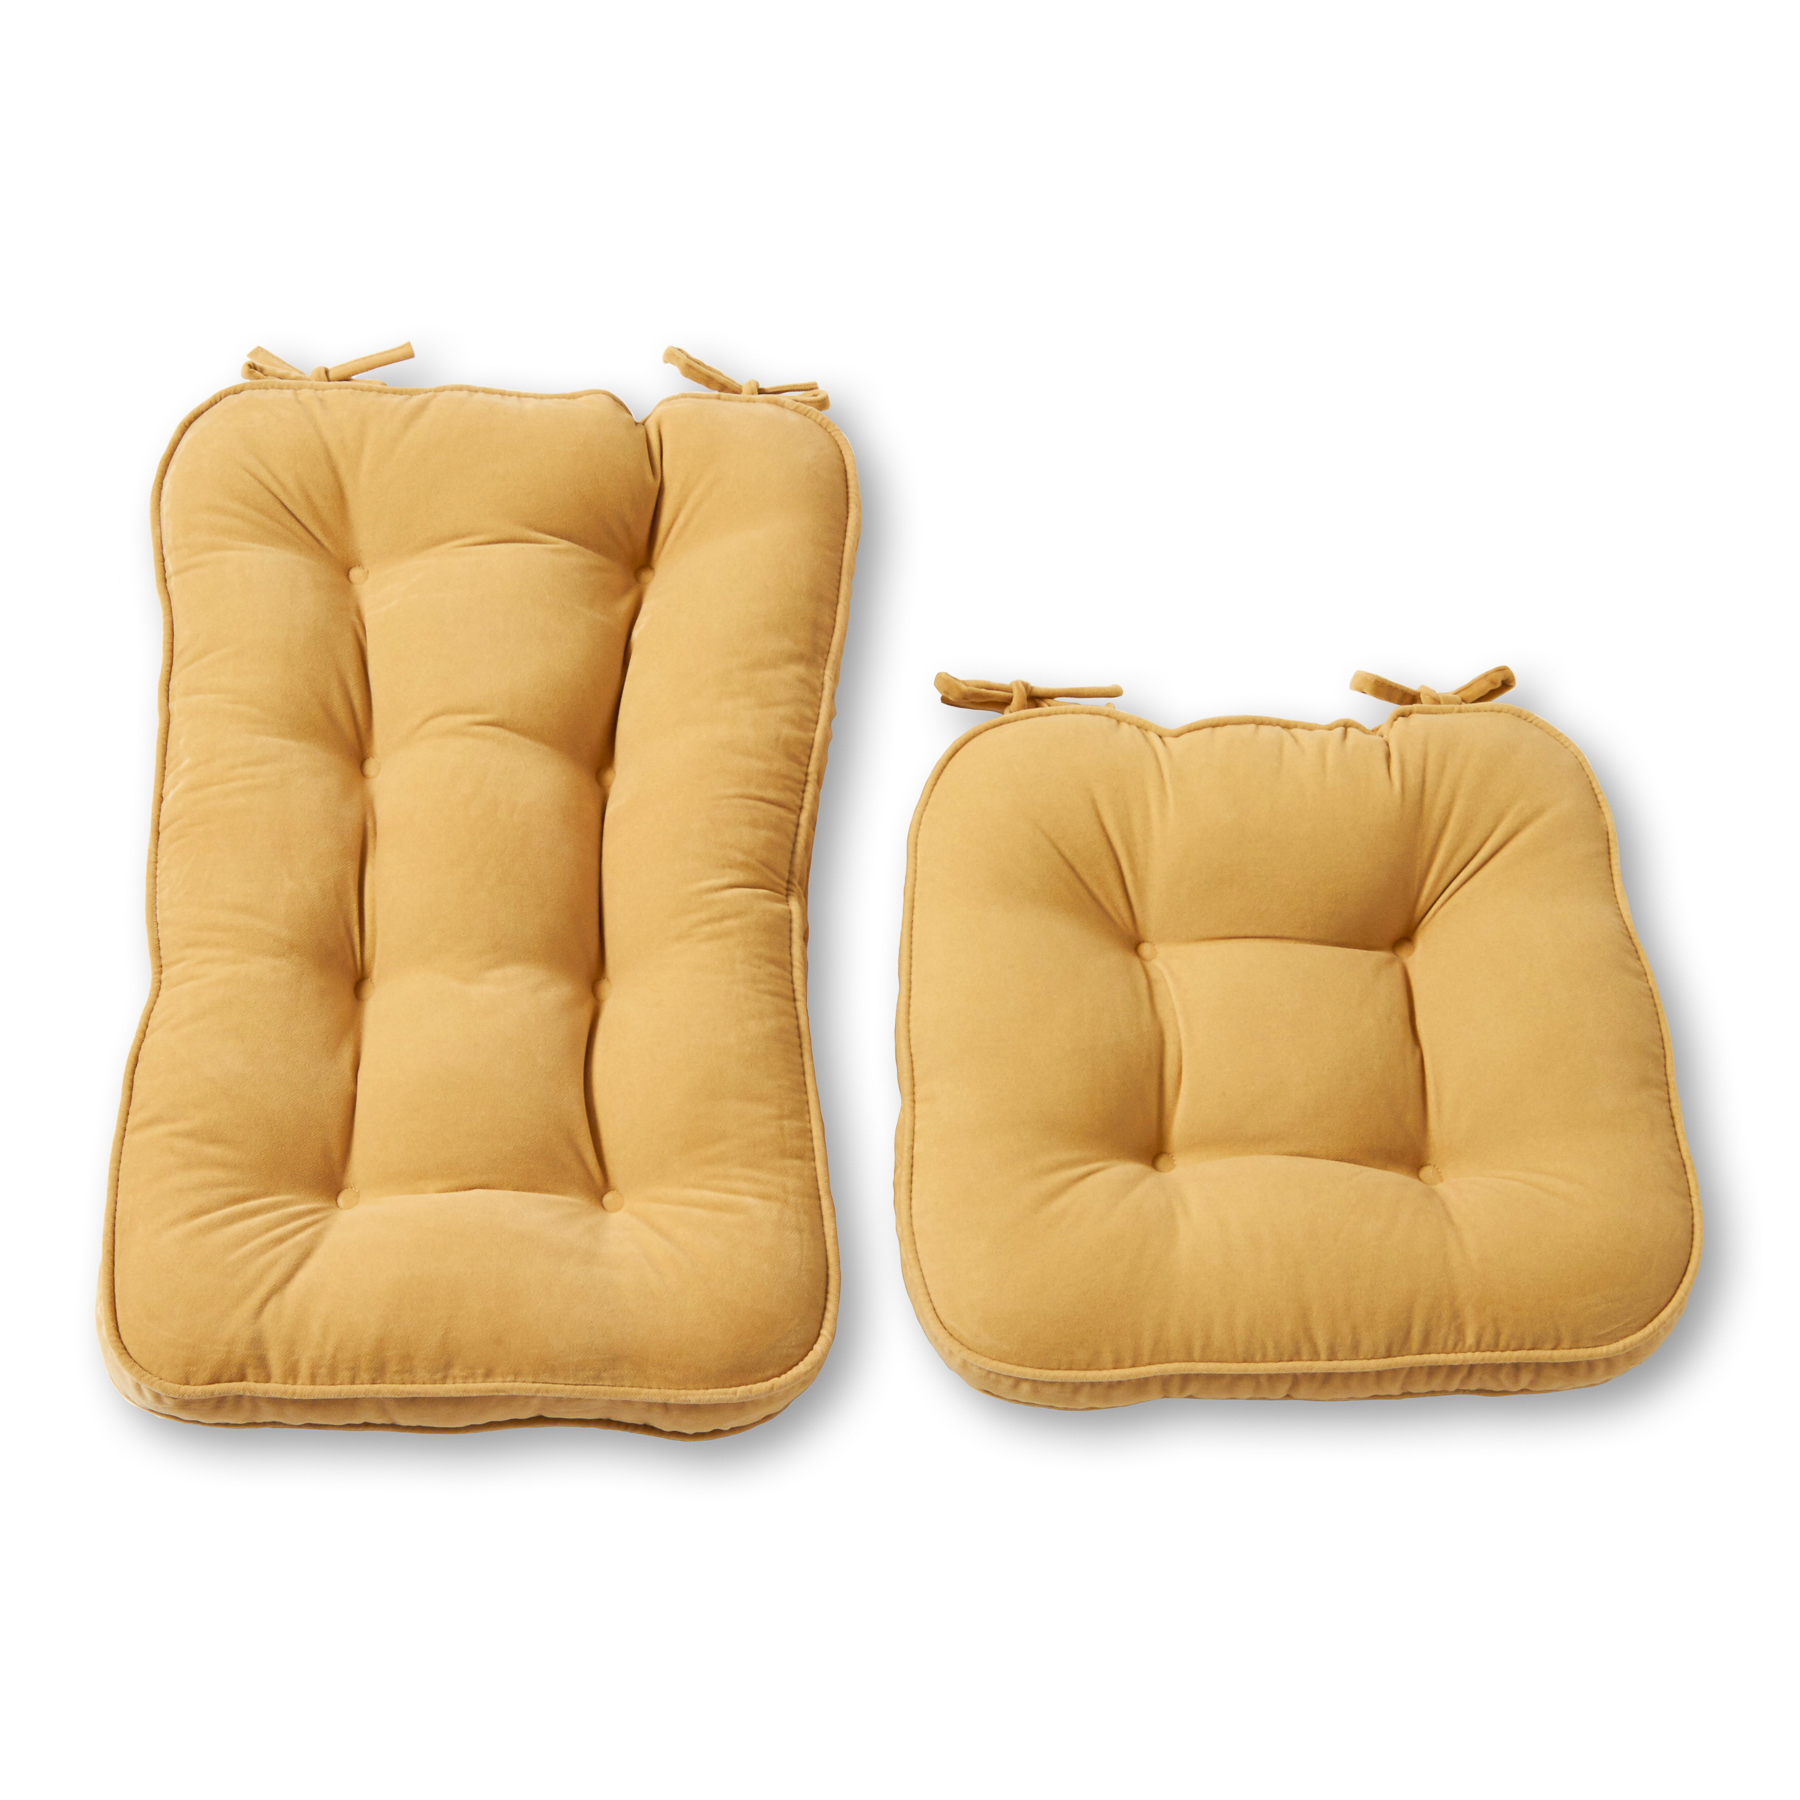 Greendale Home Fashions Hyatt Jumbo 2-Piece Rocking Chair Cushion Set